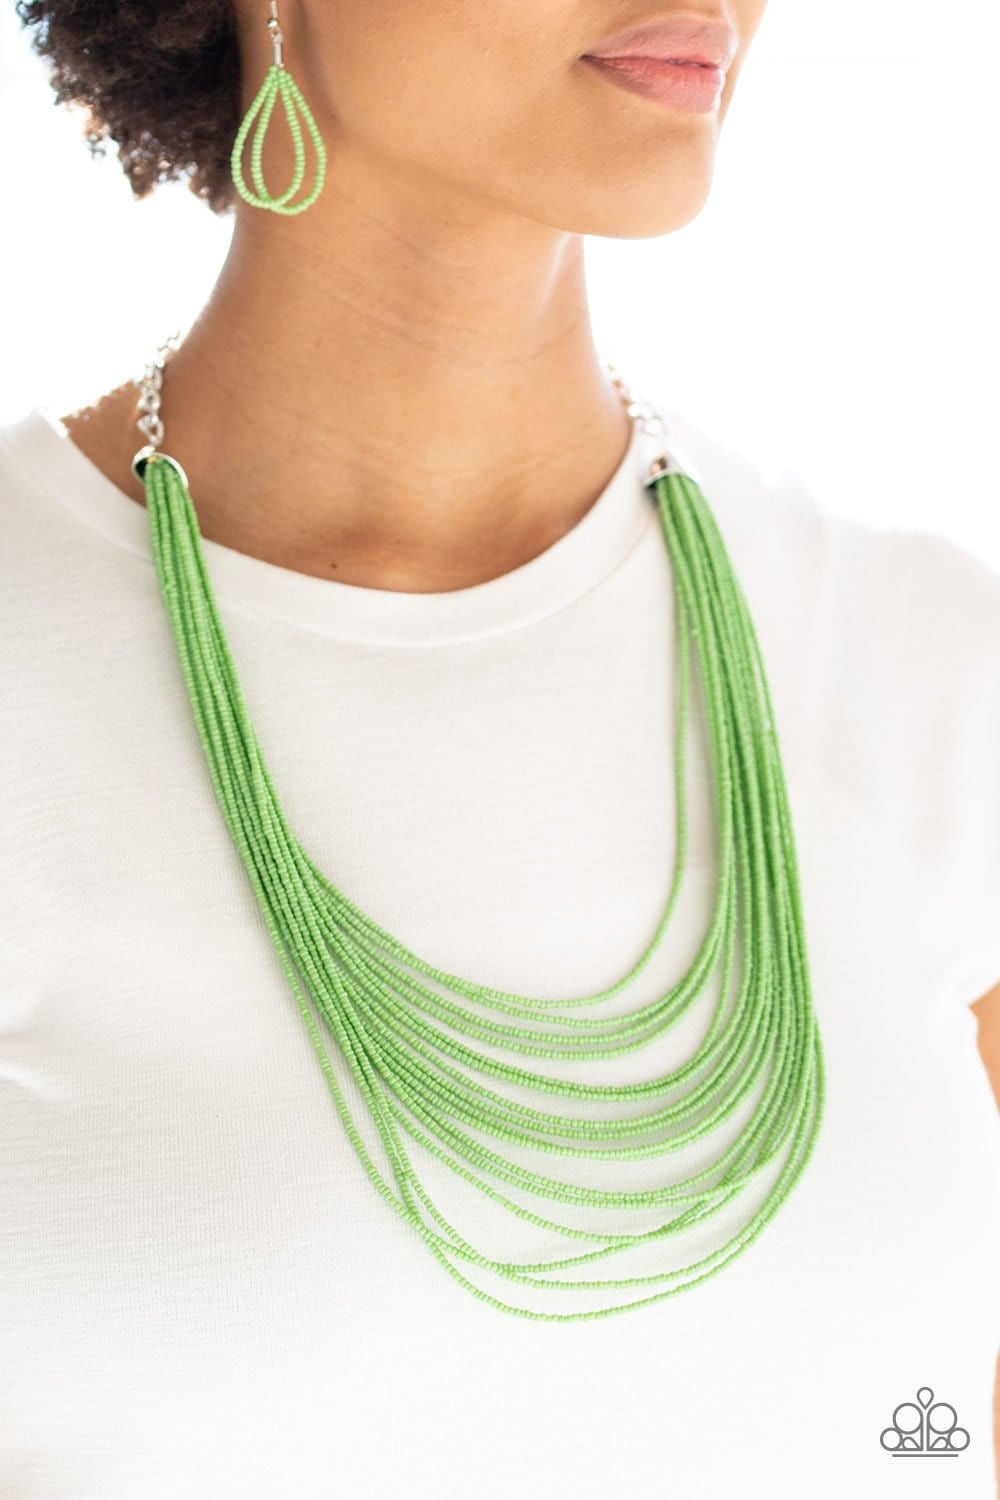 Peacefully Pacific - Green - Jewels N' Thingz Boutique